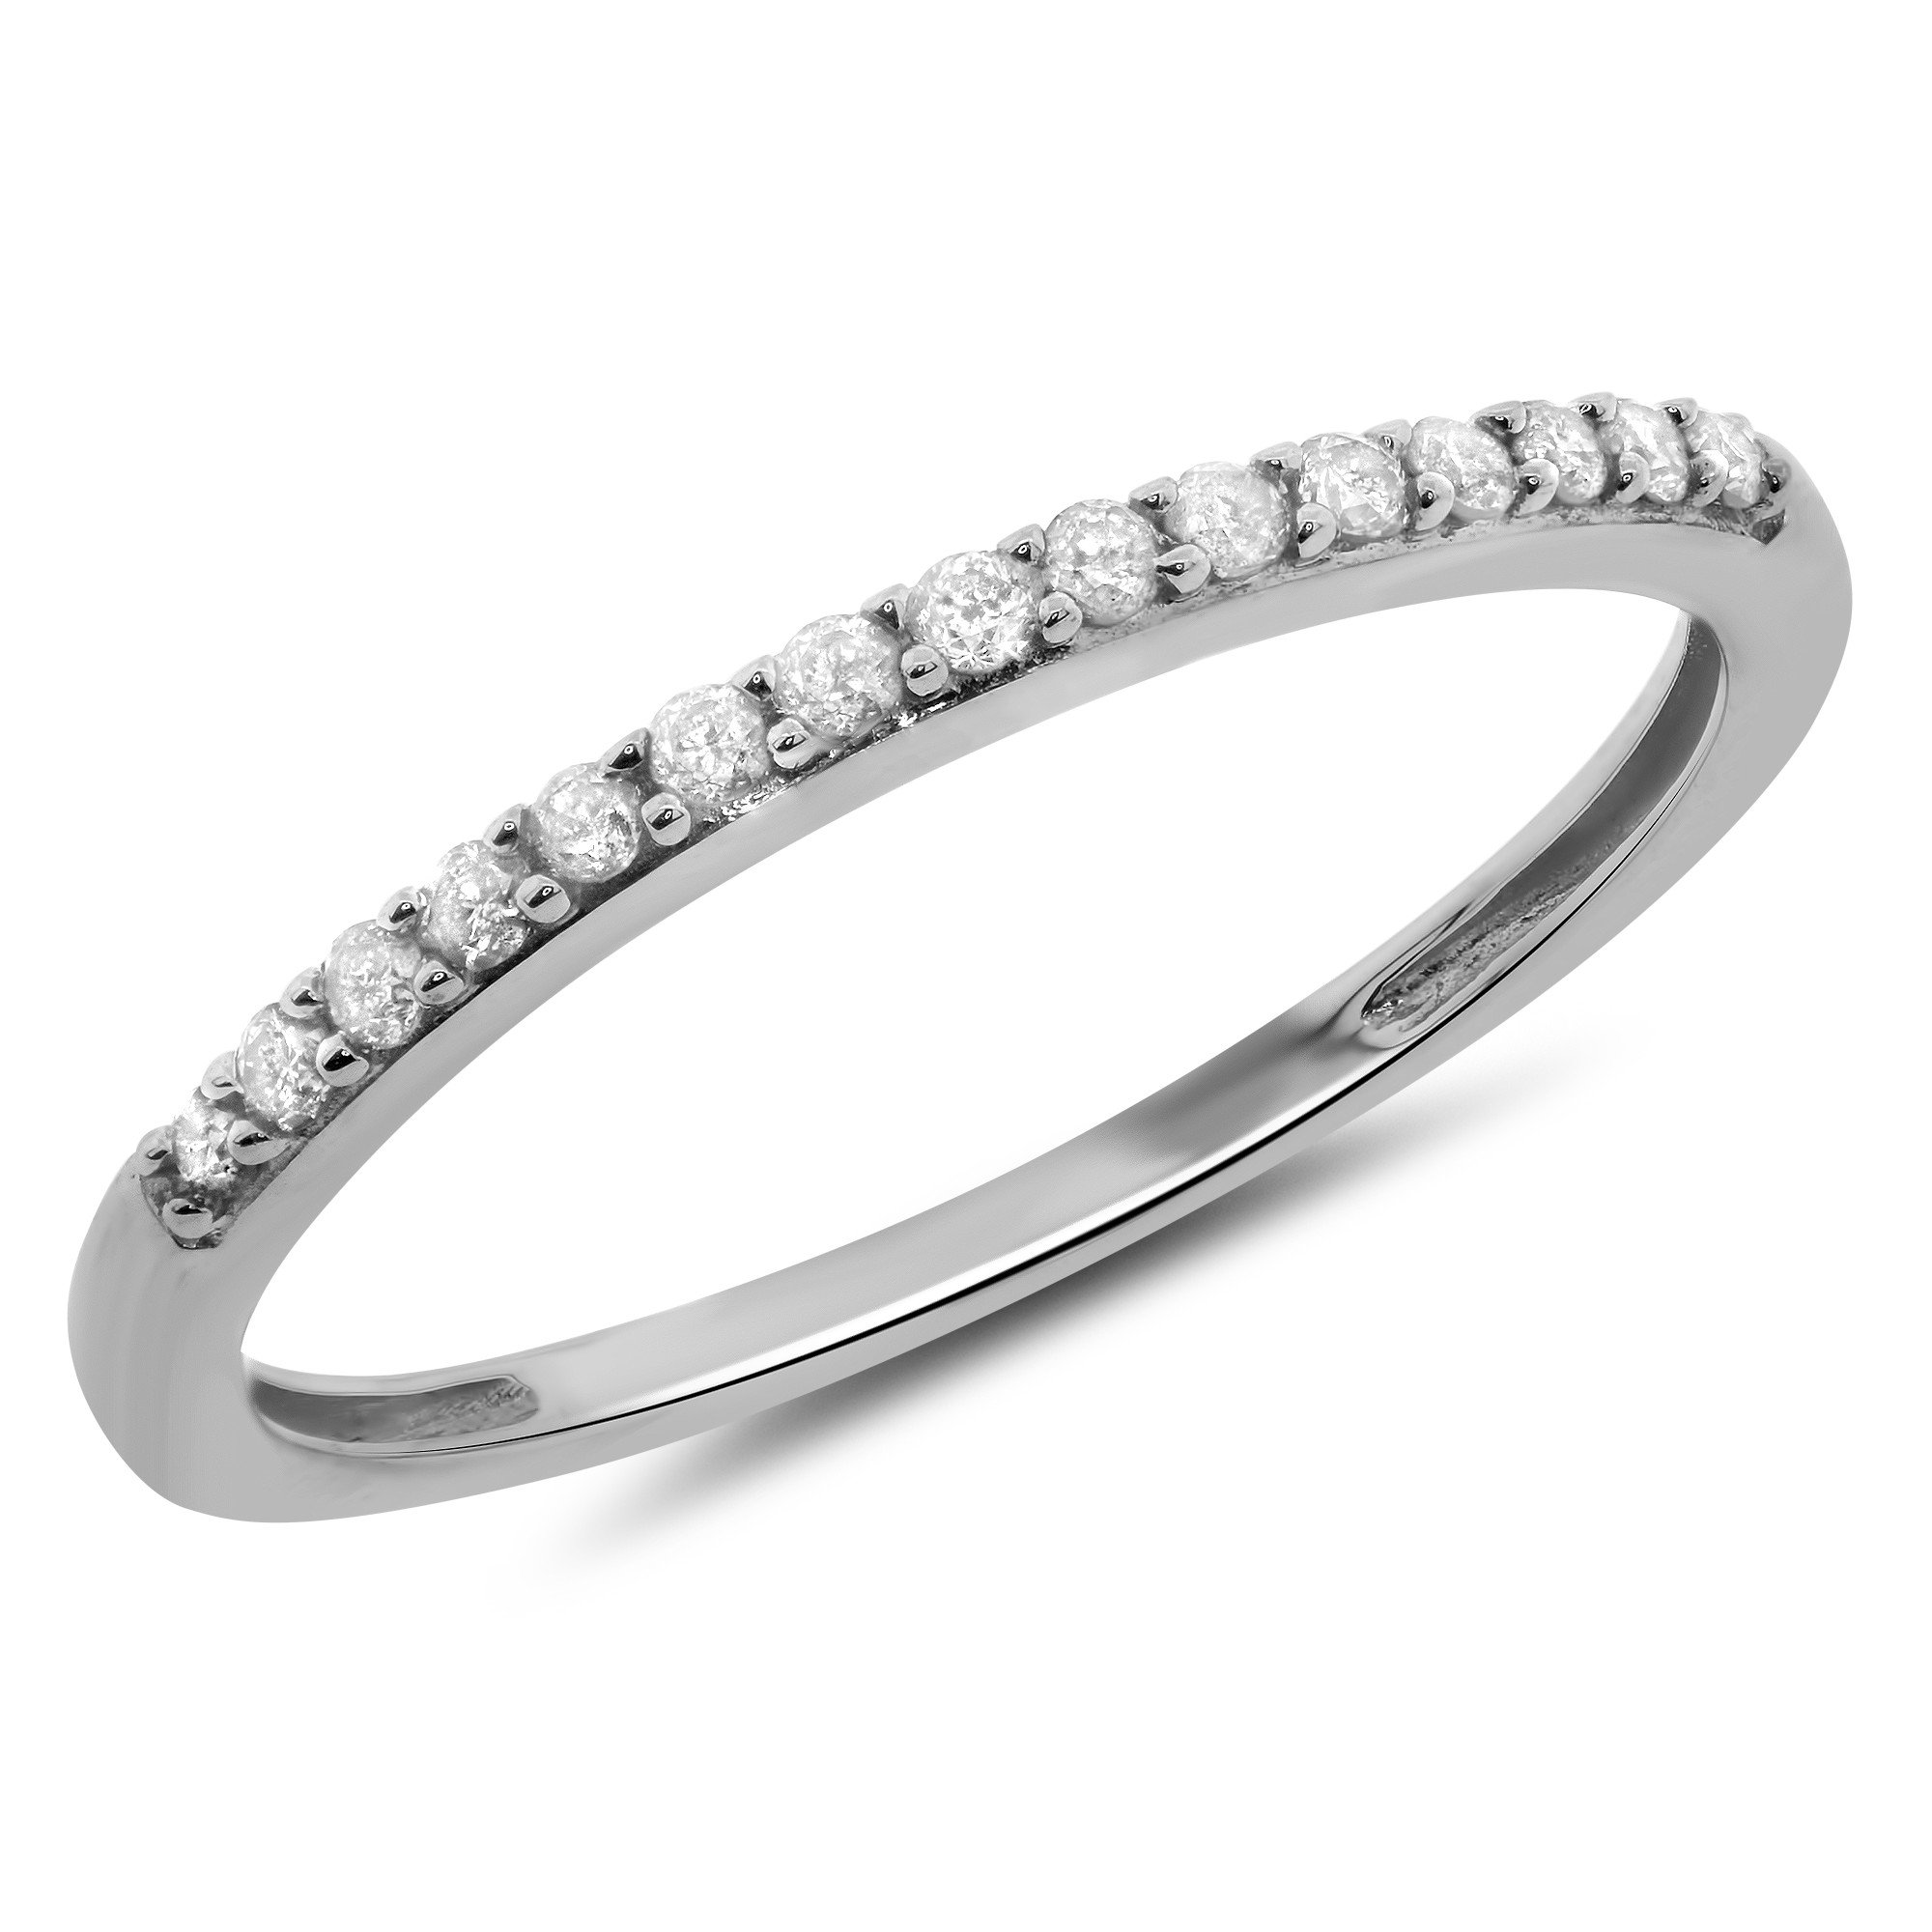 0.15 Carat (ctw) 14k Gold Round Diamond Petite Prong Set Wedding Band Anniversary Ring Stackable 1/7 CT - White-gold, Size 5.5